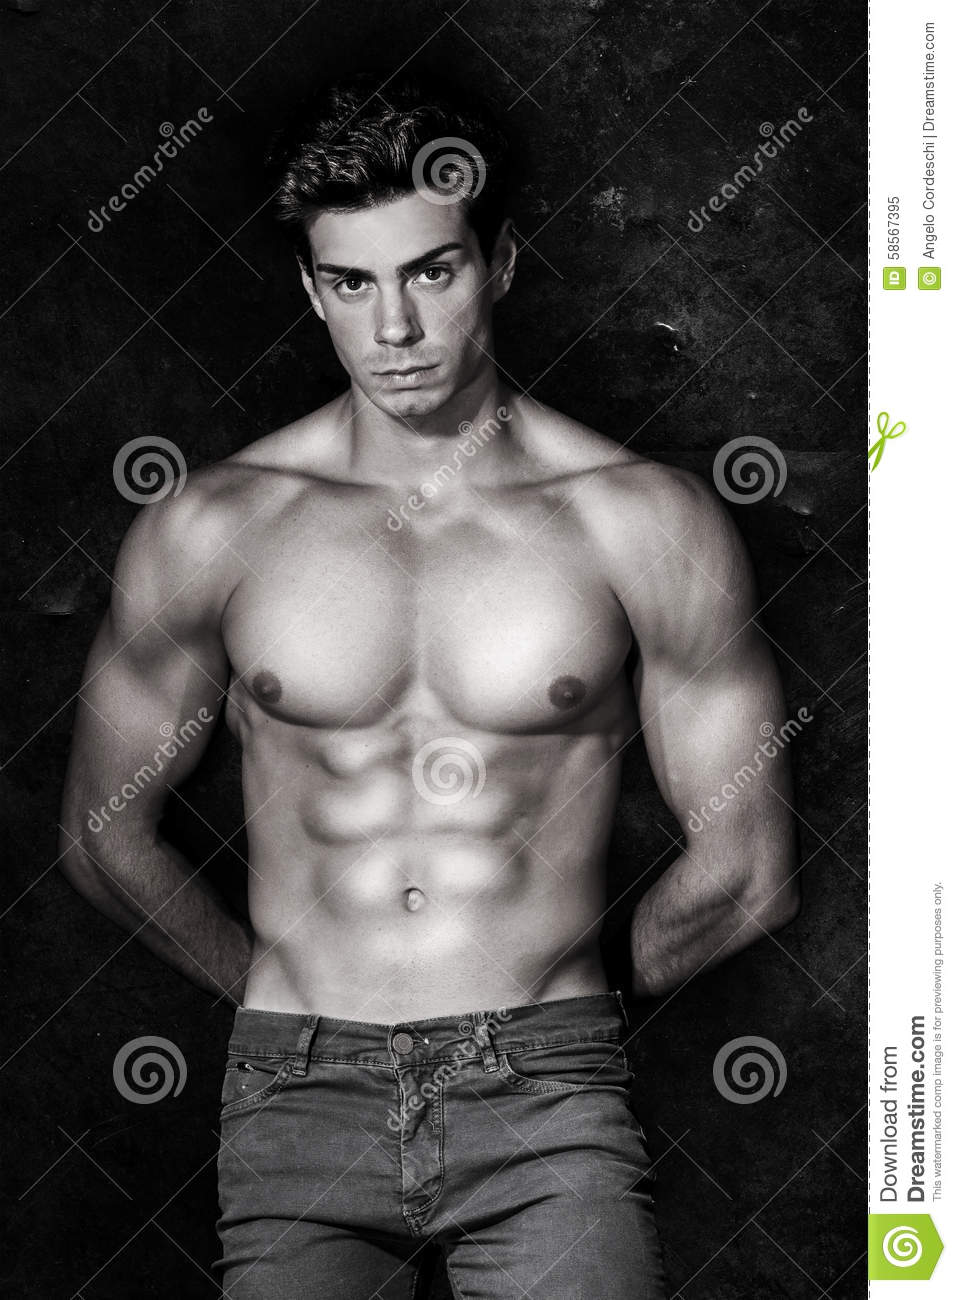 italian model muscular man. nude portrait. black and white stock